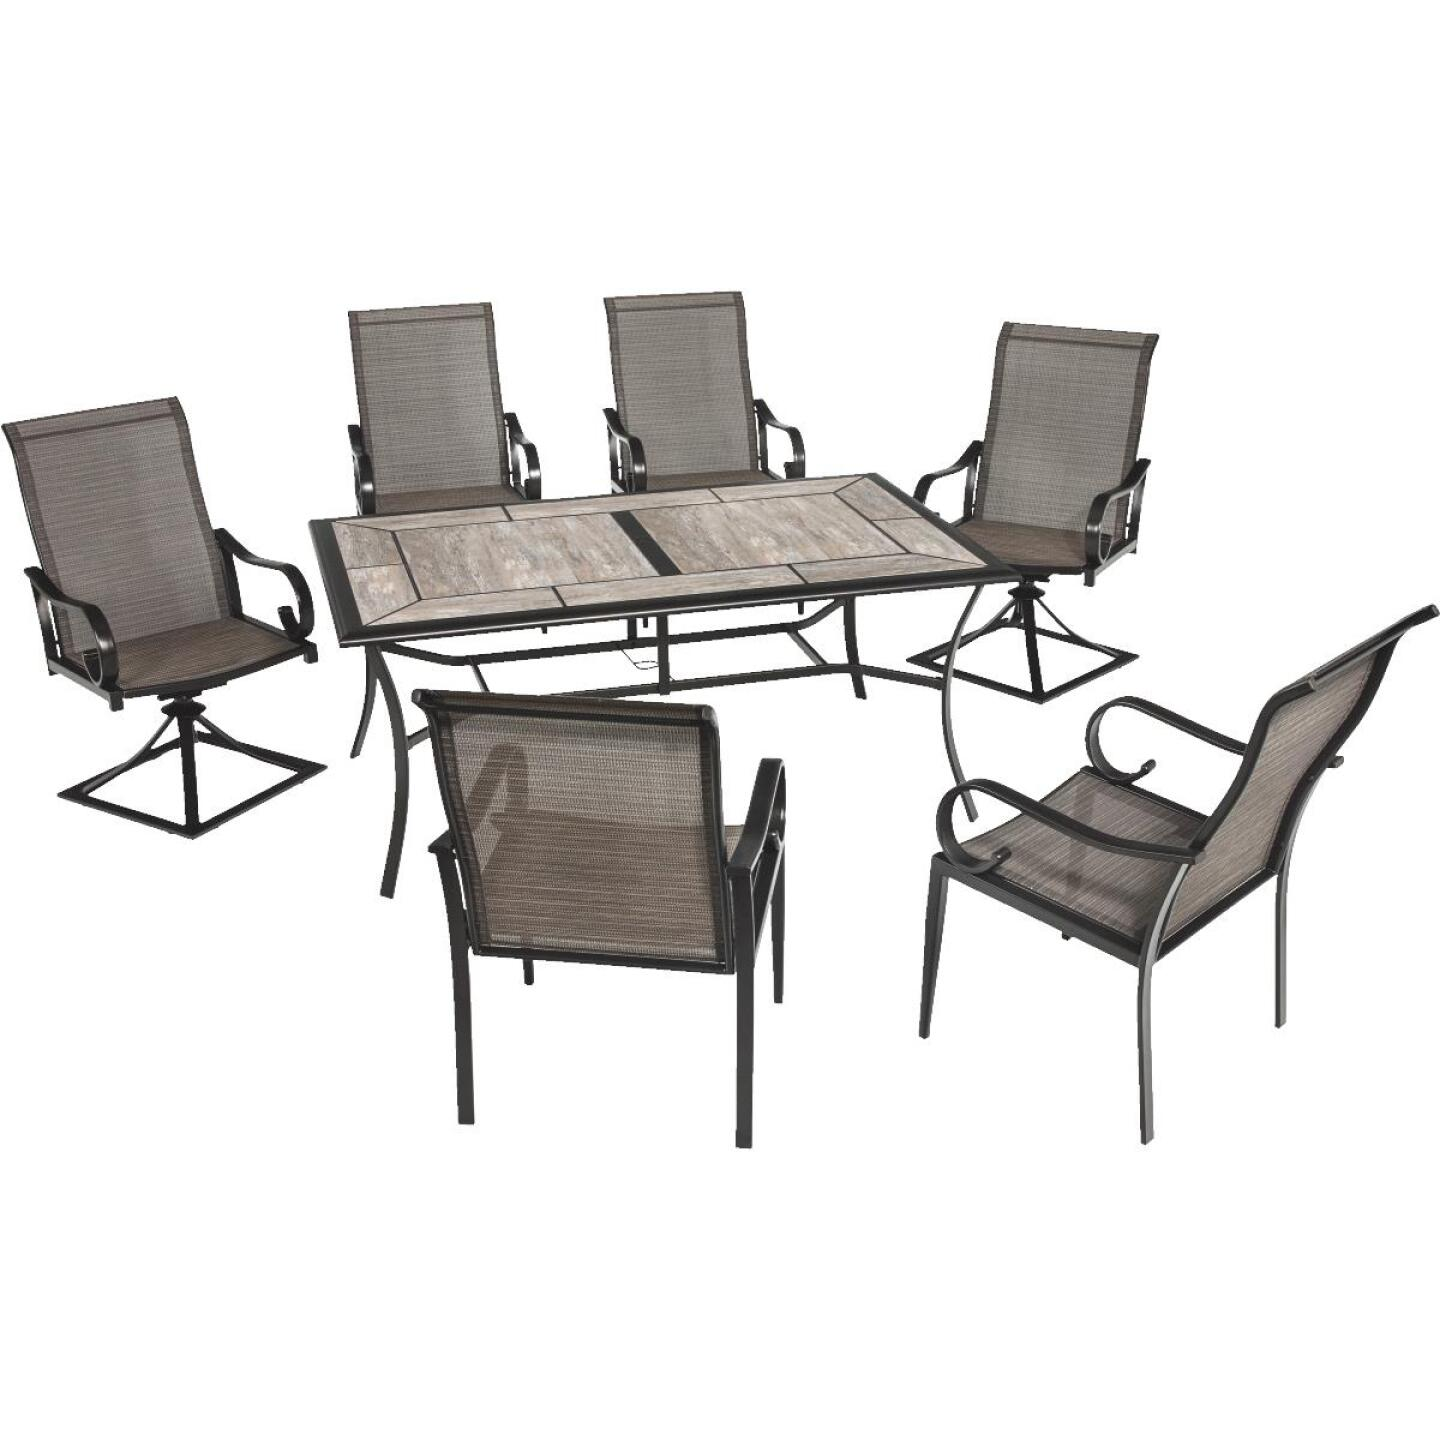 Outdoor Expressions Berkshire 7-Piece Dining Set Image 13